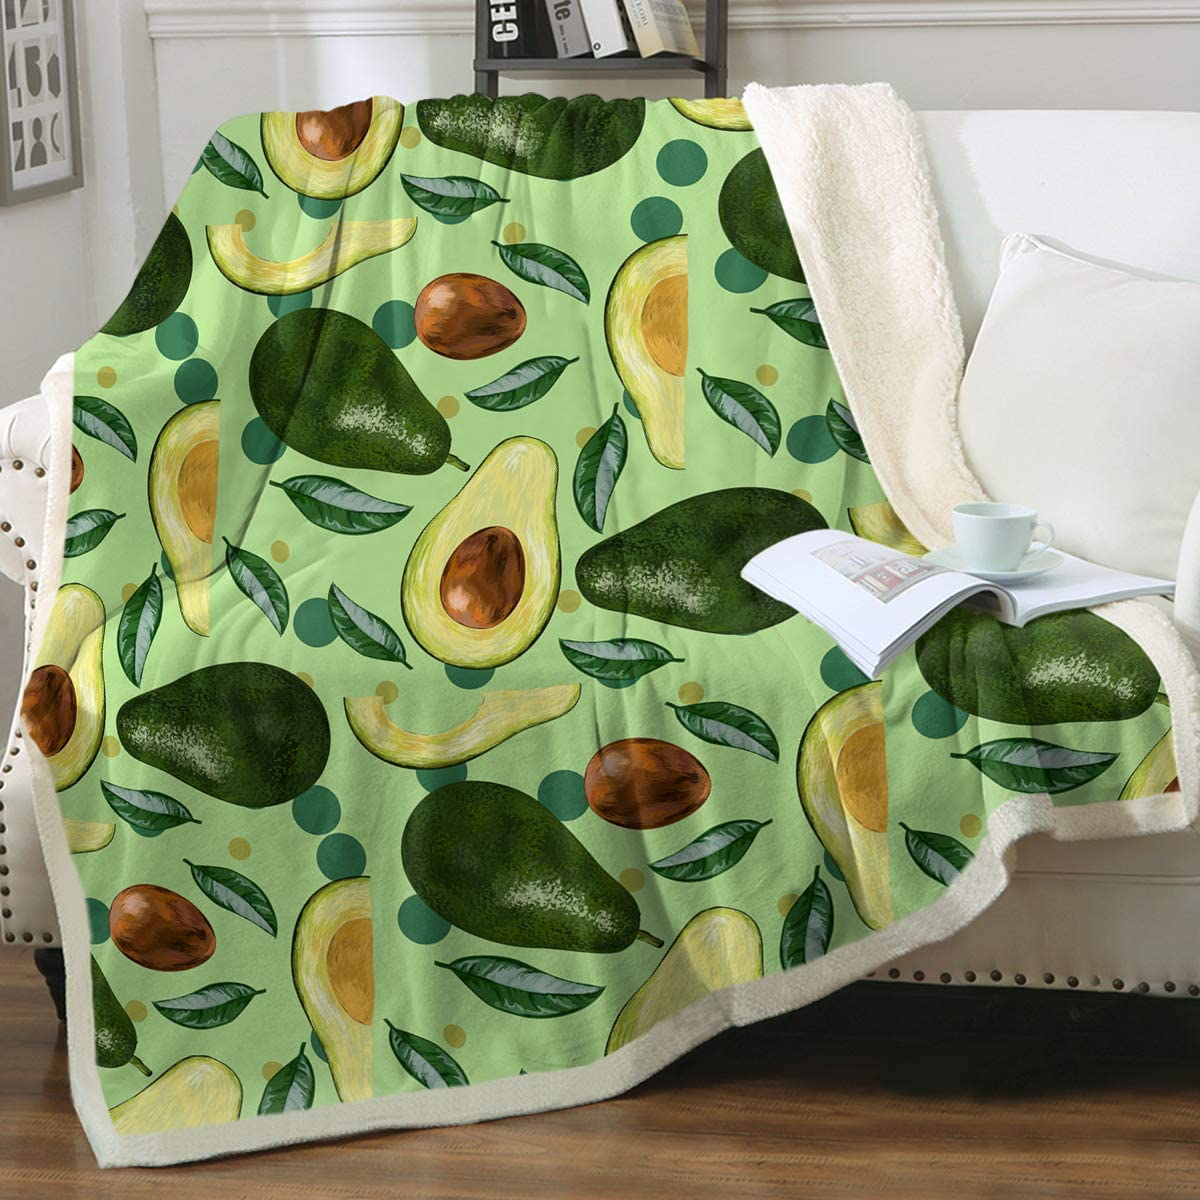 Sleepwish Avocado Blanket Green Brown Fruit Food Throw Blanket for Kids Adults Funny Avocado Slices Fleece Blanket for Couch Bed Sofa Travelling Camping Twin(60